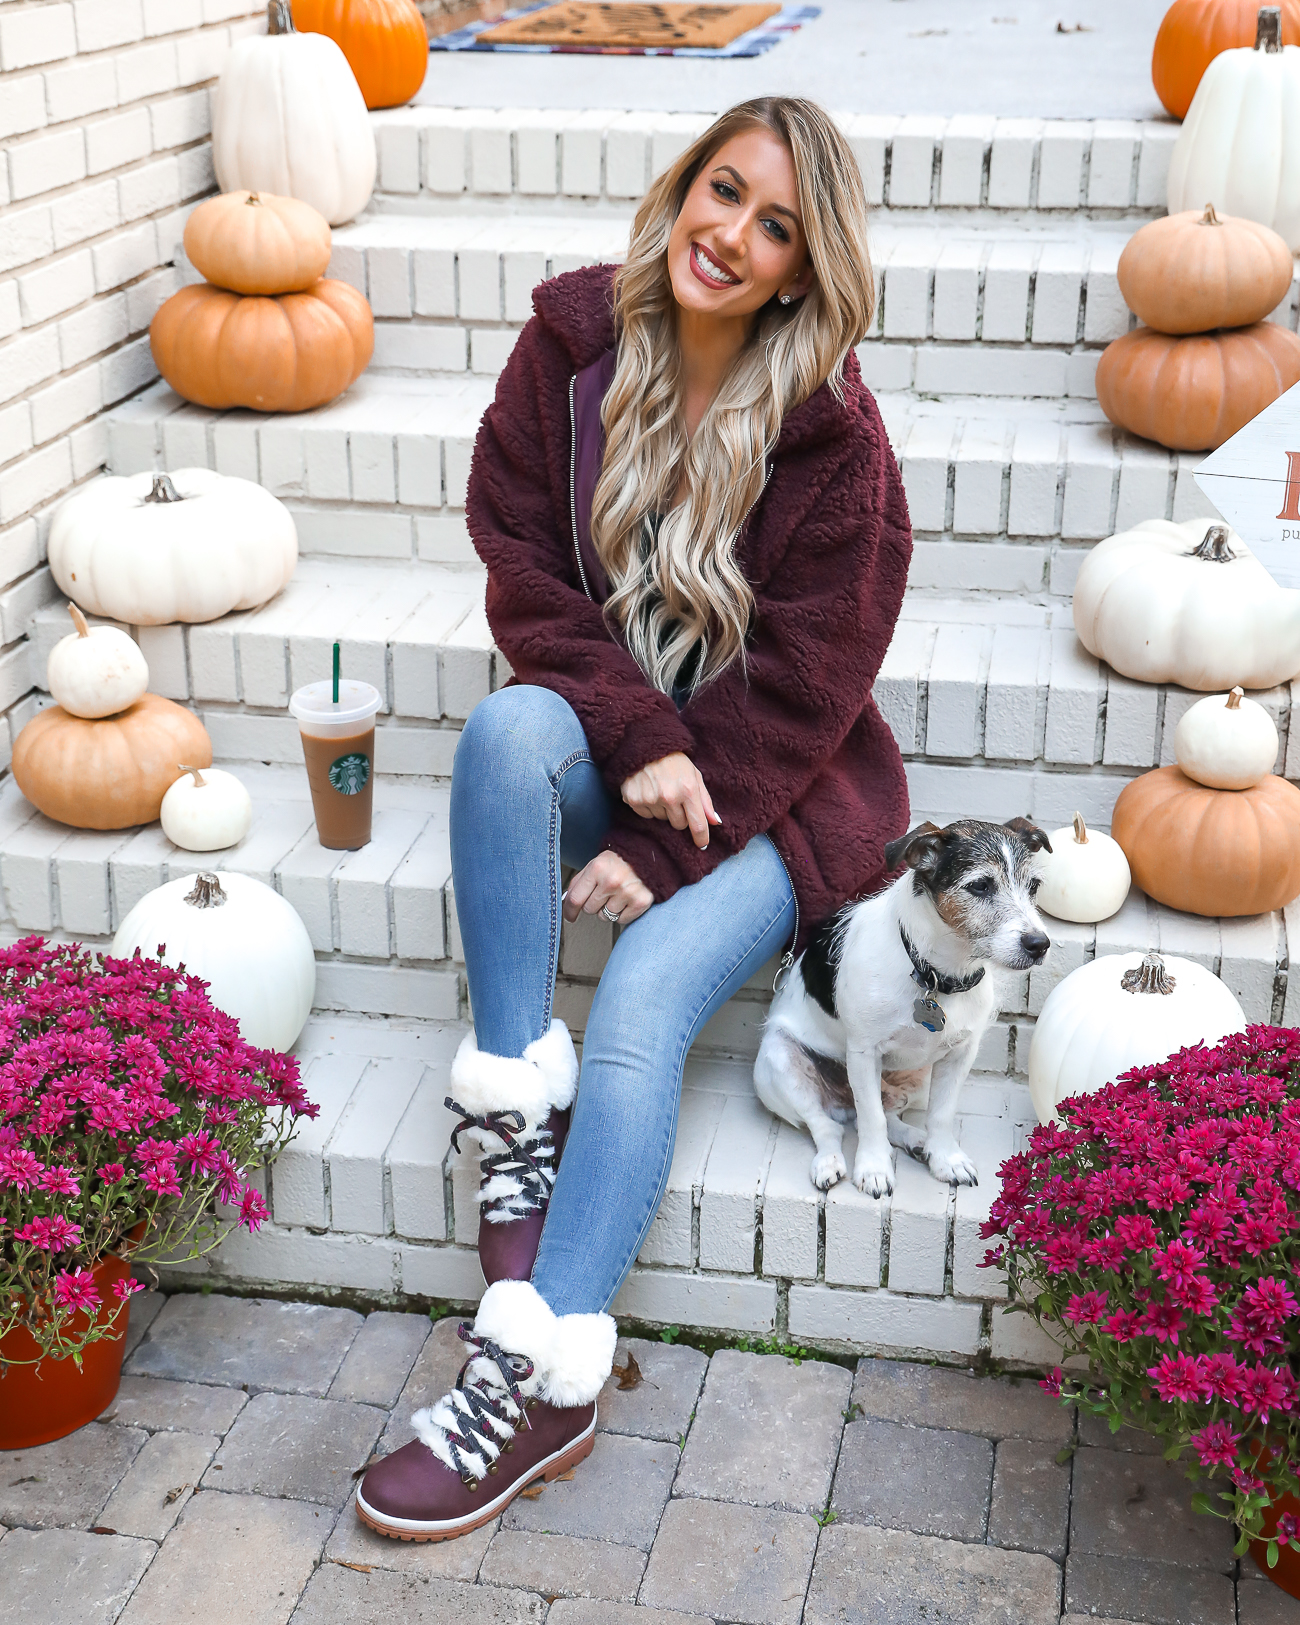 Wubby Fleece Pullover Muk Luks Faux Fur Boots Cozy Fall Outfit Idea Fall Front Porch